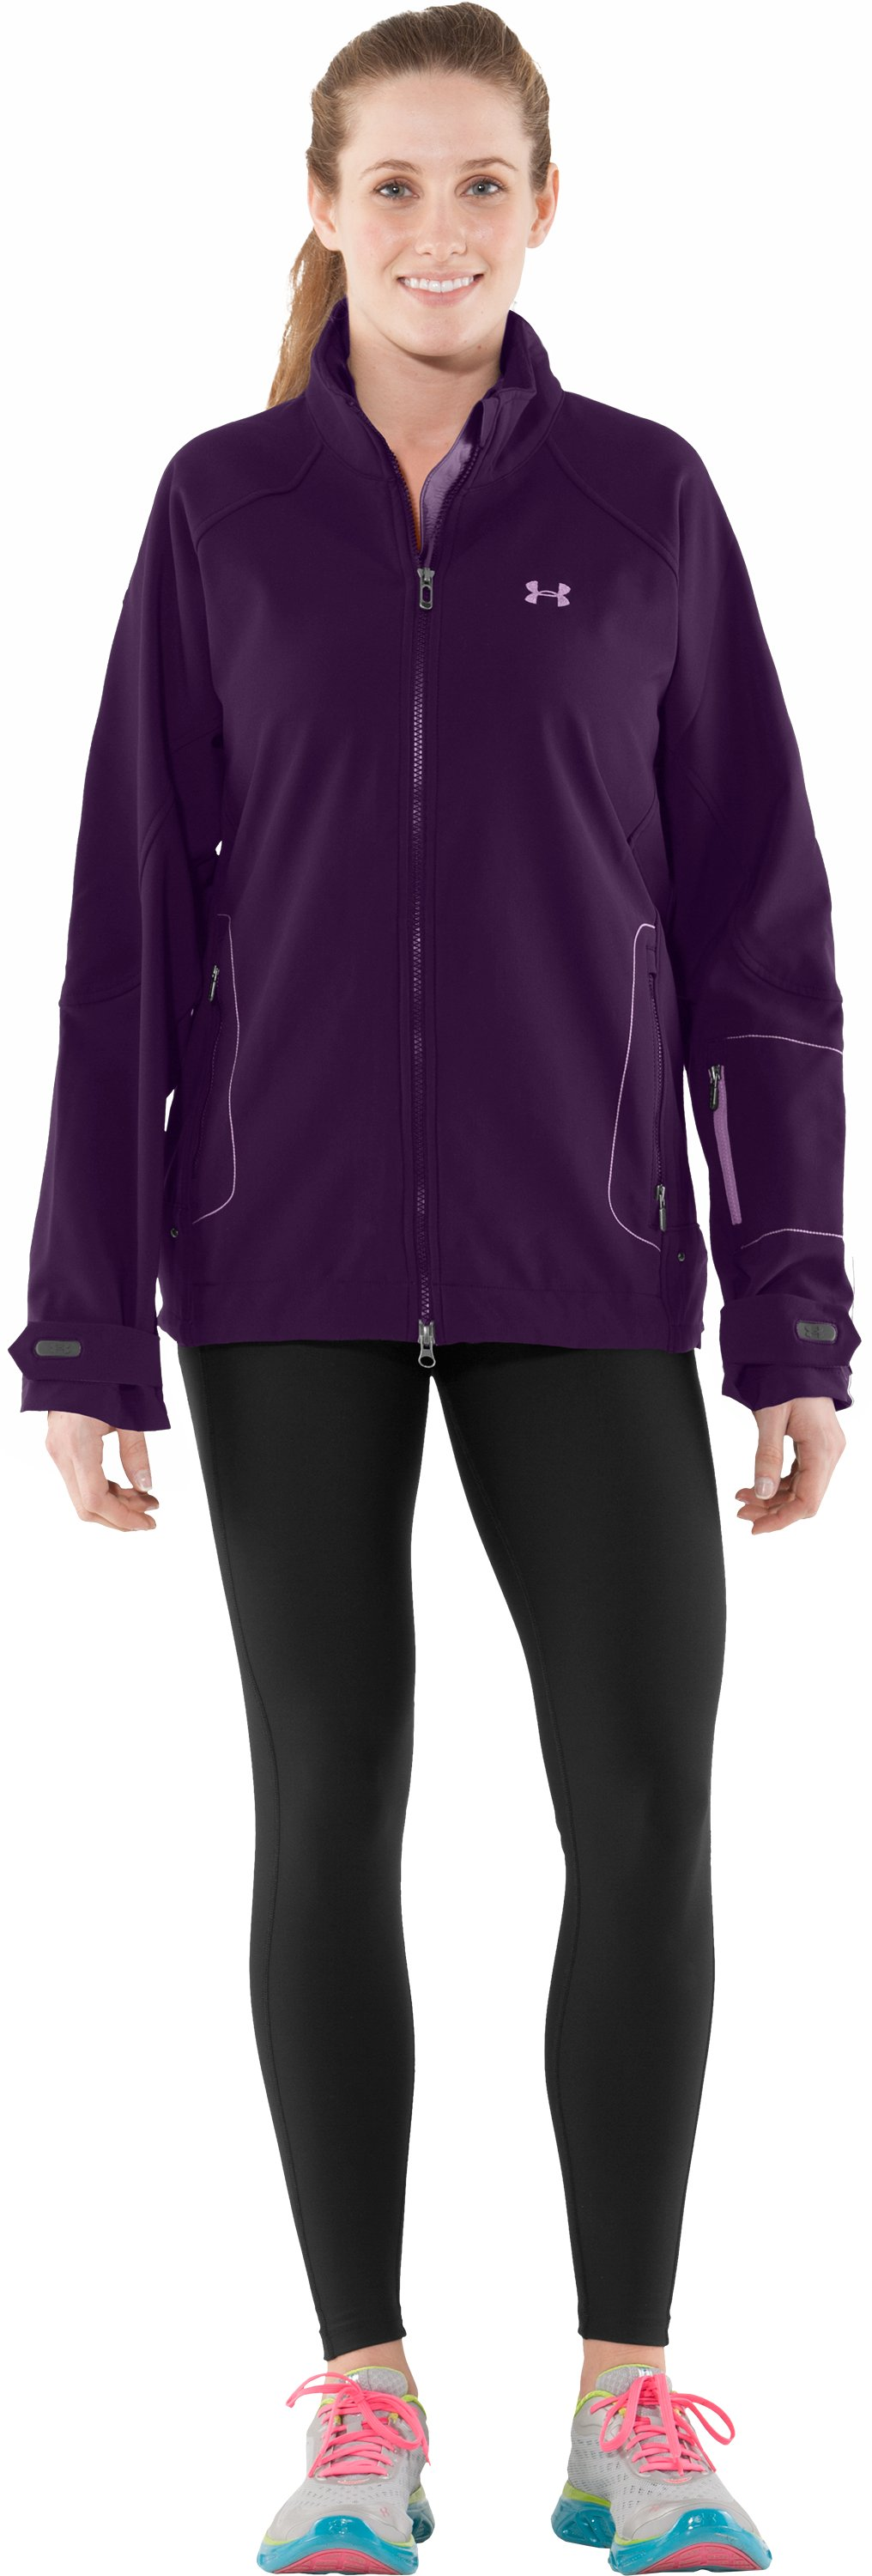 Women's Archean Softshell Jacket II, Cyclone, Front